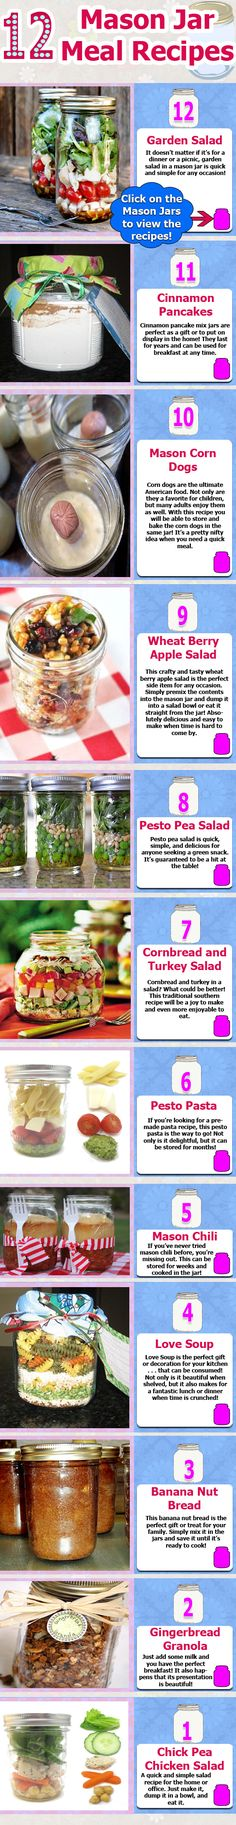 12 Mason Jar Meal Recipes & Ideas~